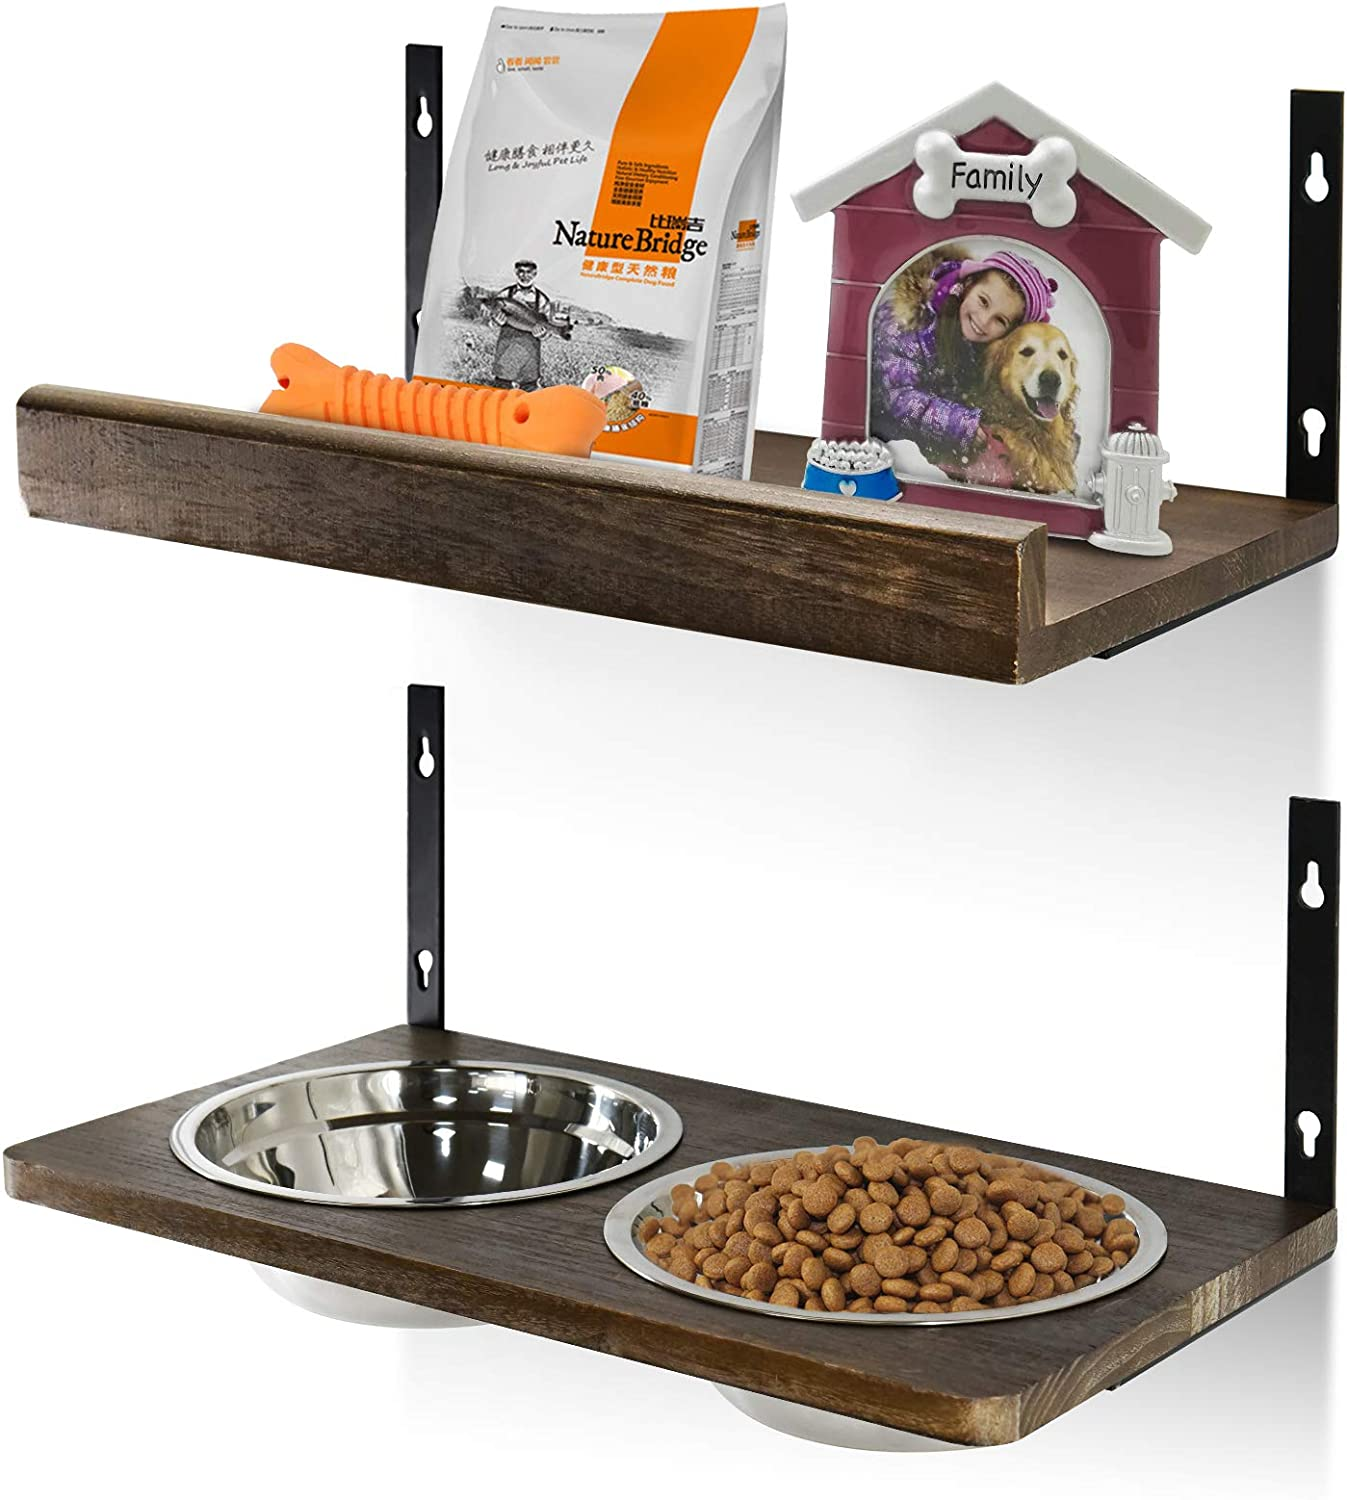 Pet Bowel Wall Mounted, Raised Pet Feeding Stand with Floating Shelf, Customized Height Elevated Pet Feeder Station for Food and Water with 2 Stainless Steel Bowls for Large Medium Small Pet